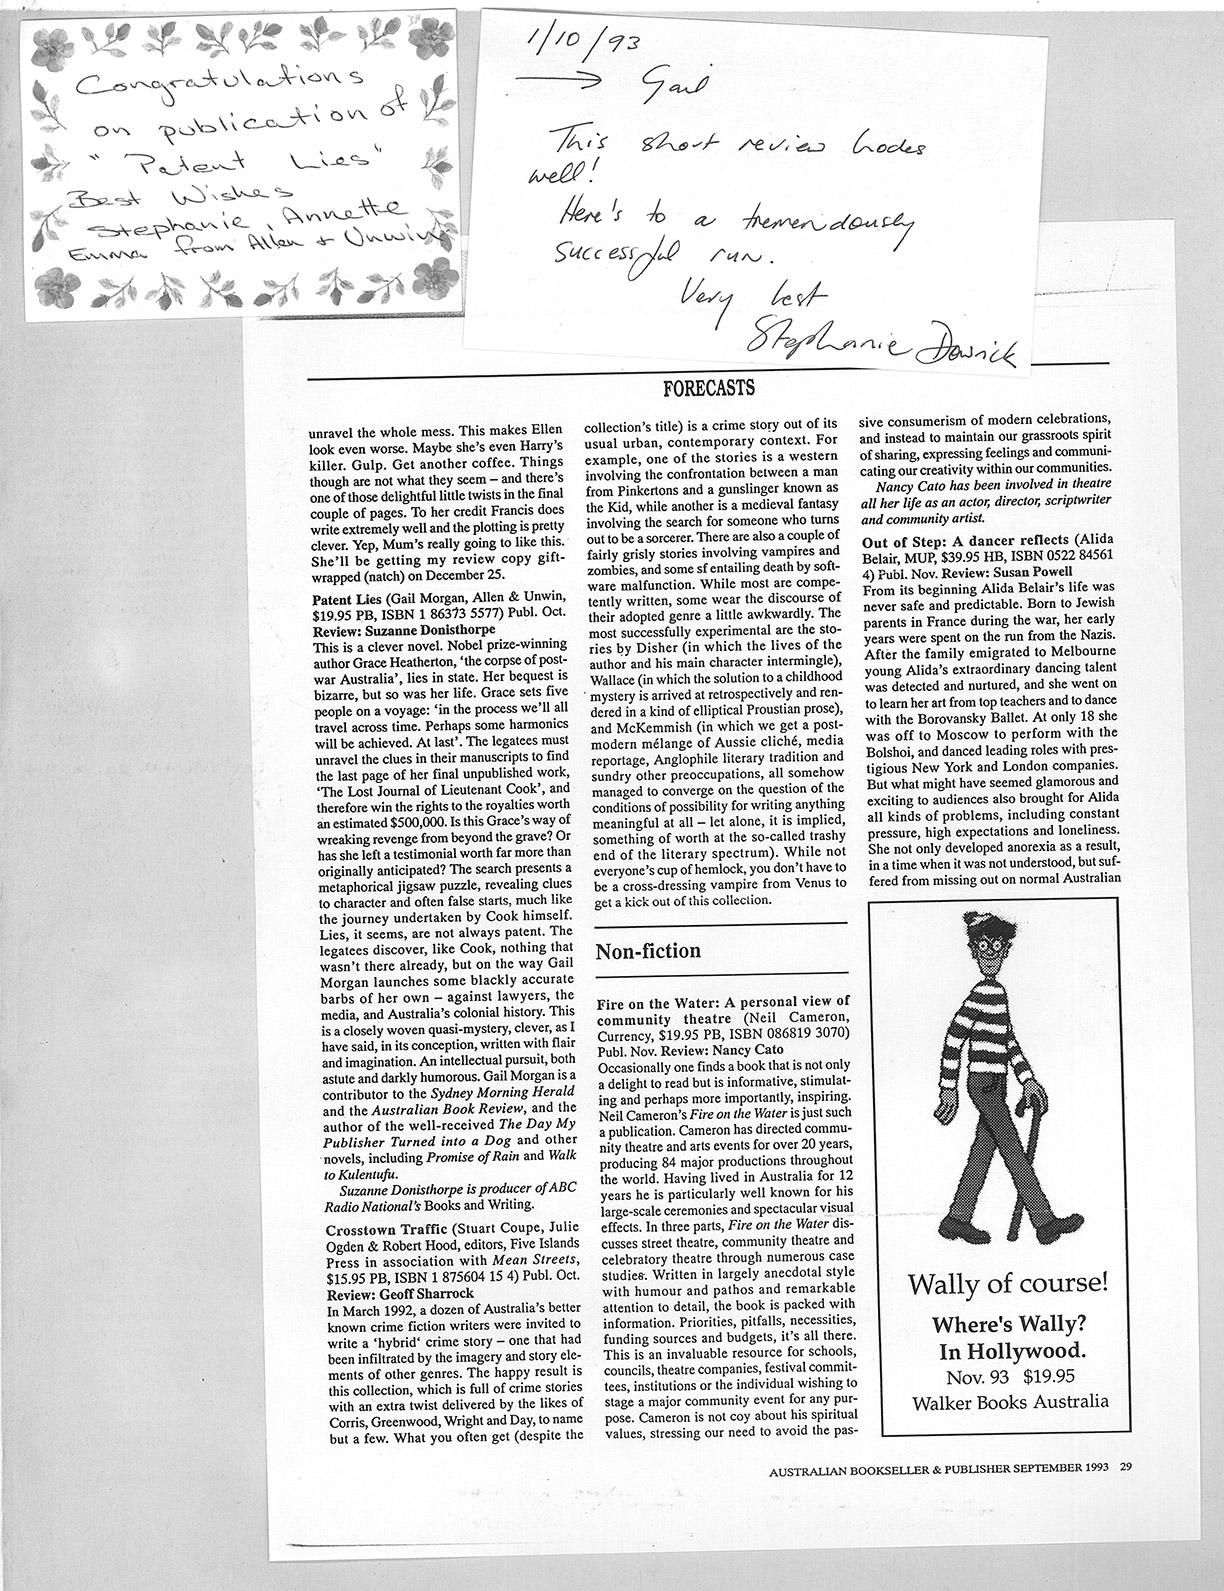 Australian Bookseller and Publisher – Review '93